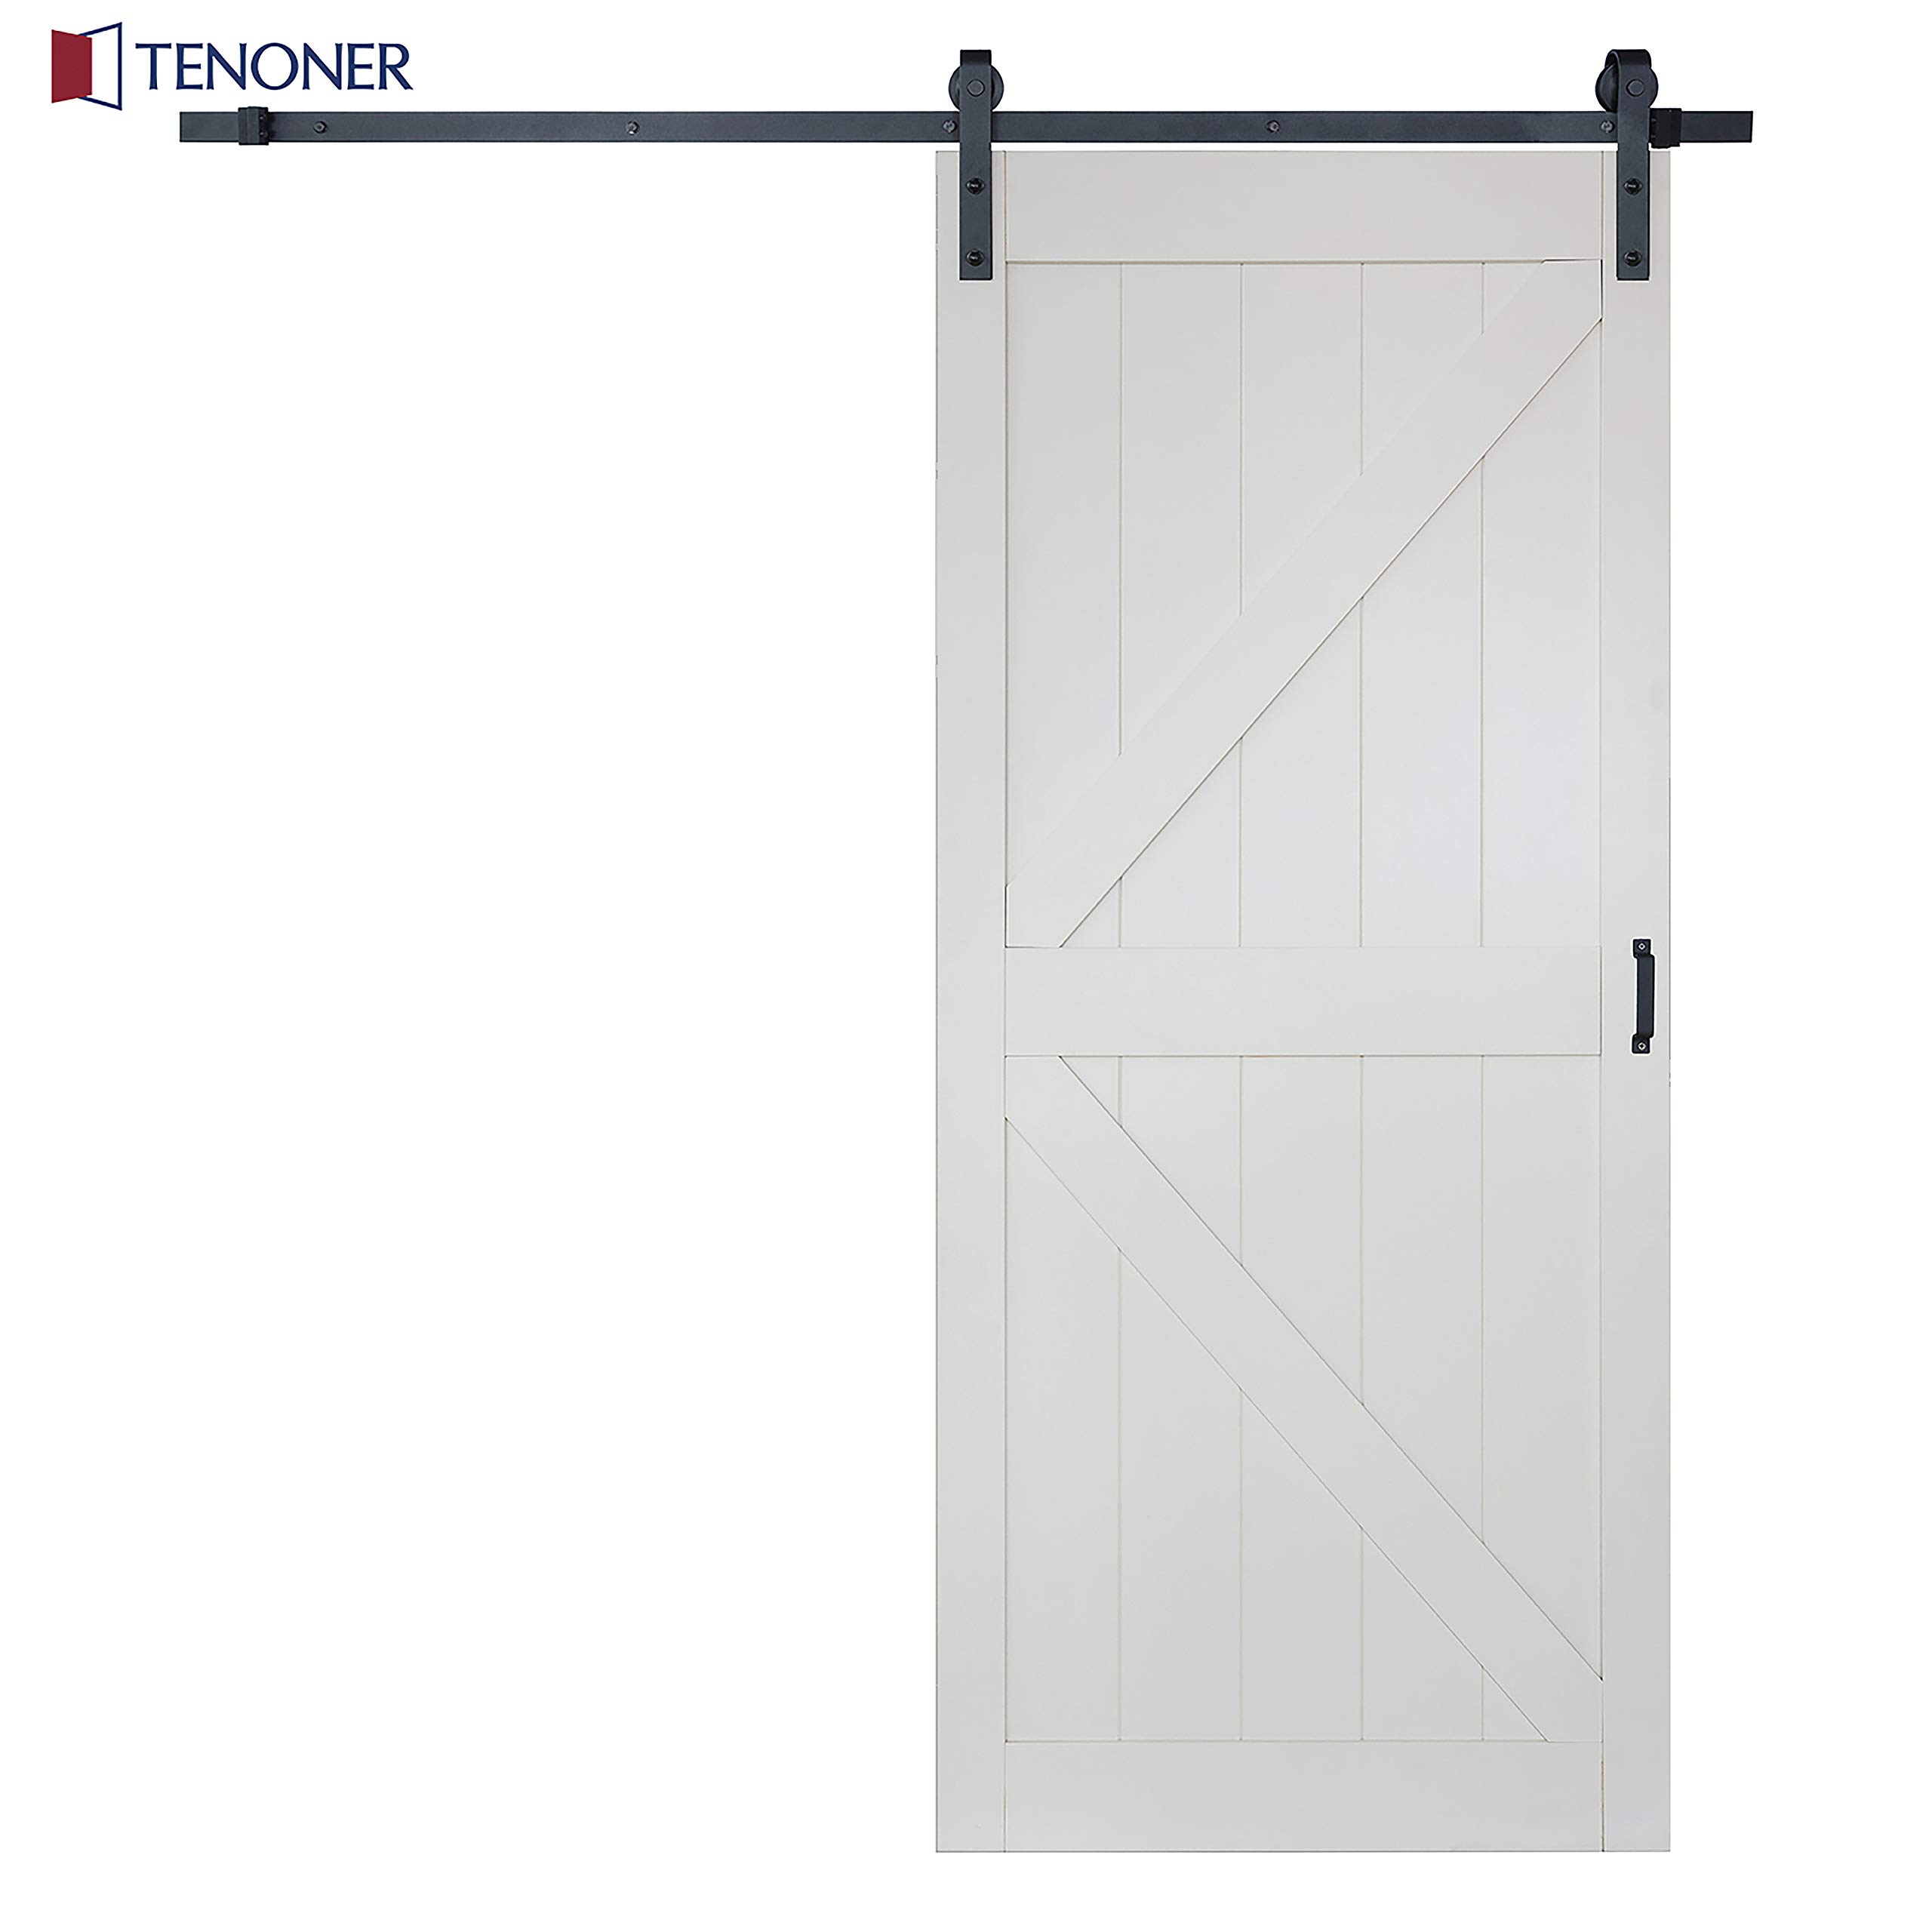 TENONER 36in x 84in White K-Frame Sliding Barn Door, with 6.6ft Barn Door Hardware Kit & Handle, Pre-Drilled Ready to Assemble Solid MDF & Wood Door Slab Covered with Water-Proof Surface